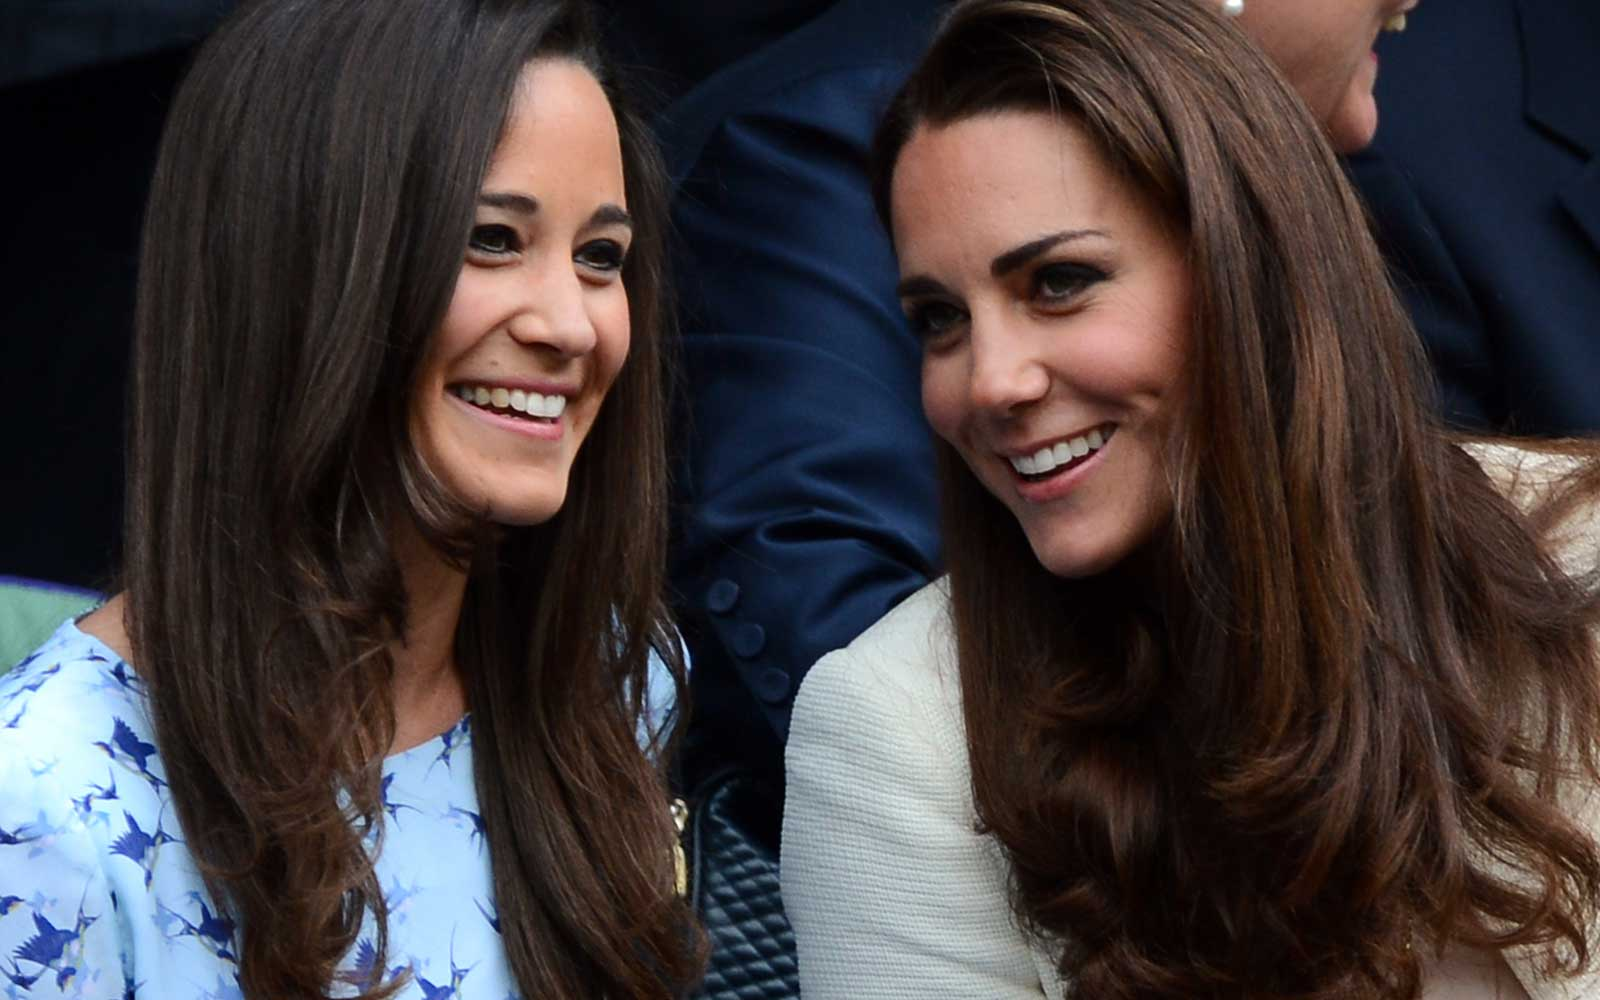 Kate and Pippa Middleton's Former London Apartment Is for Sale for $2.5 Million